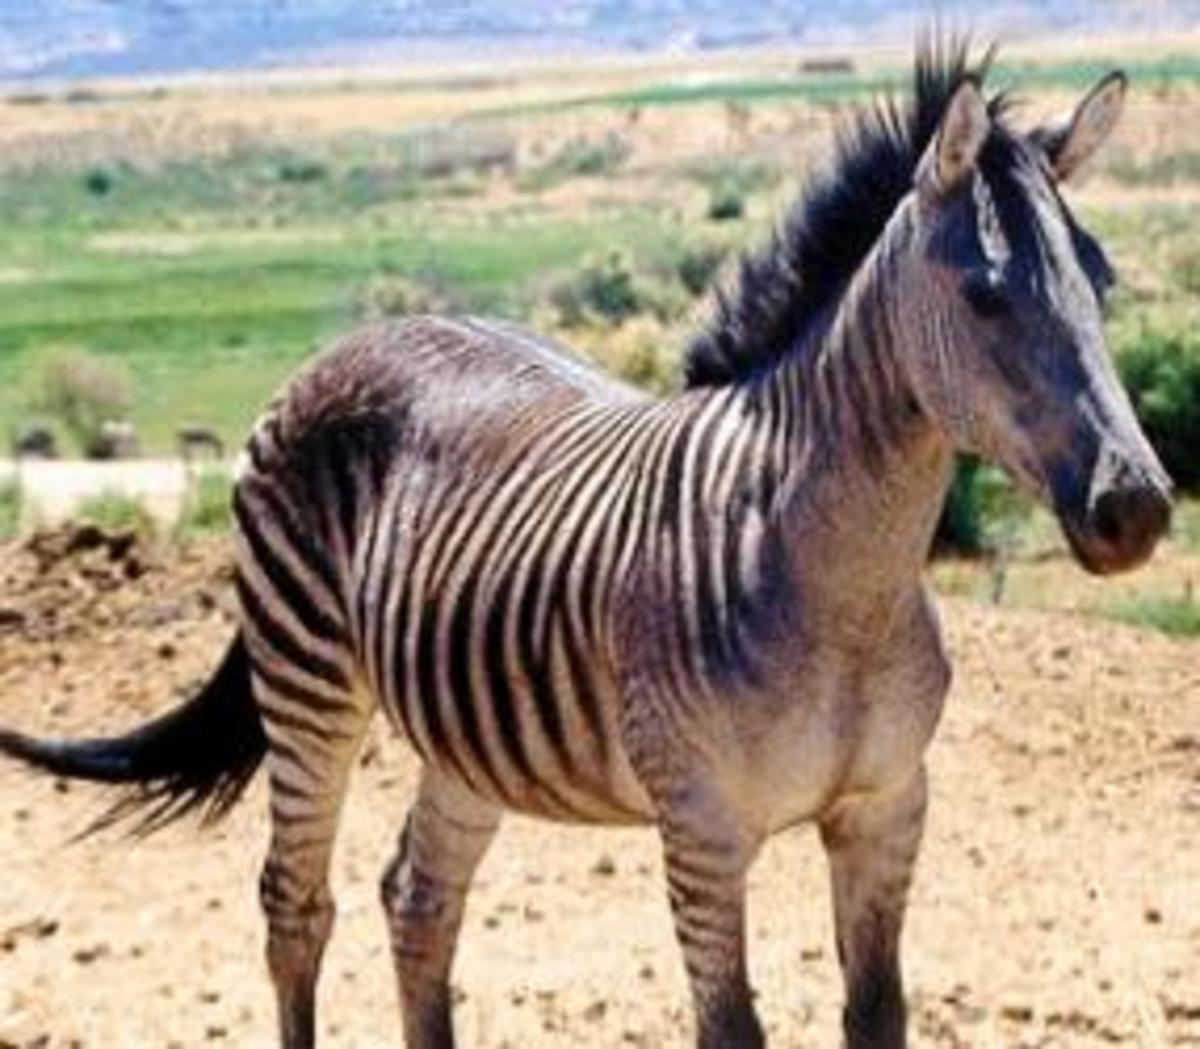 A zorse is the result of crossbreeding a horse and a zebra. A zonkey is the result of crossbreeding a donkey with a zebra. The Zony is the result of crossbreeding a pony to a zebra. All these three are called zebroids - defined as a cross between a z